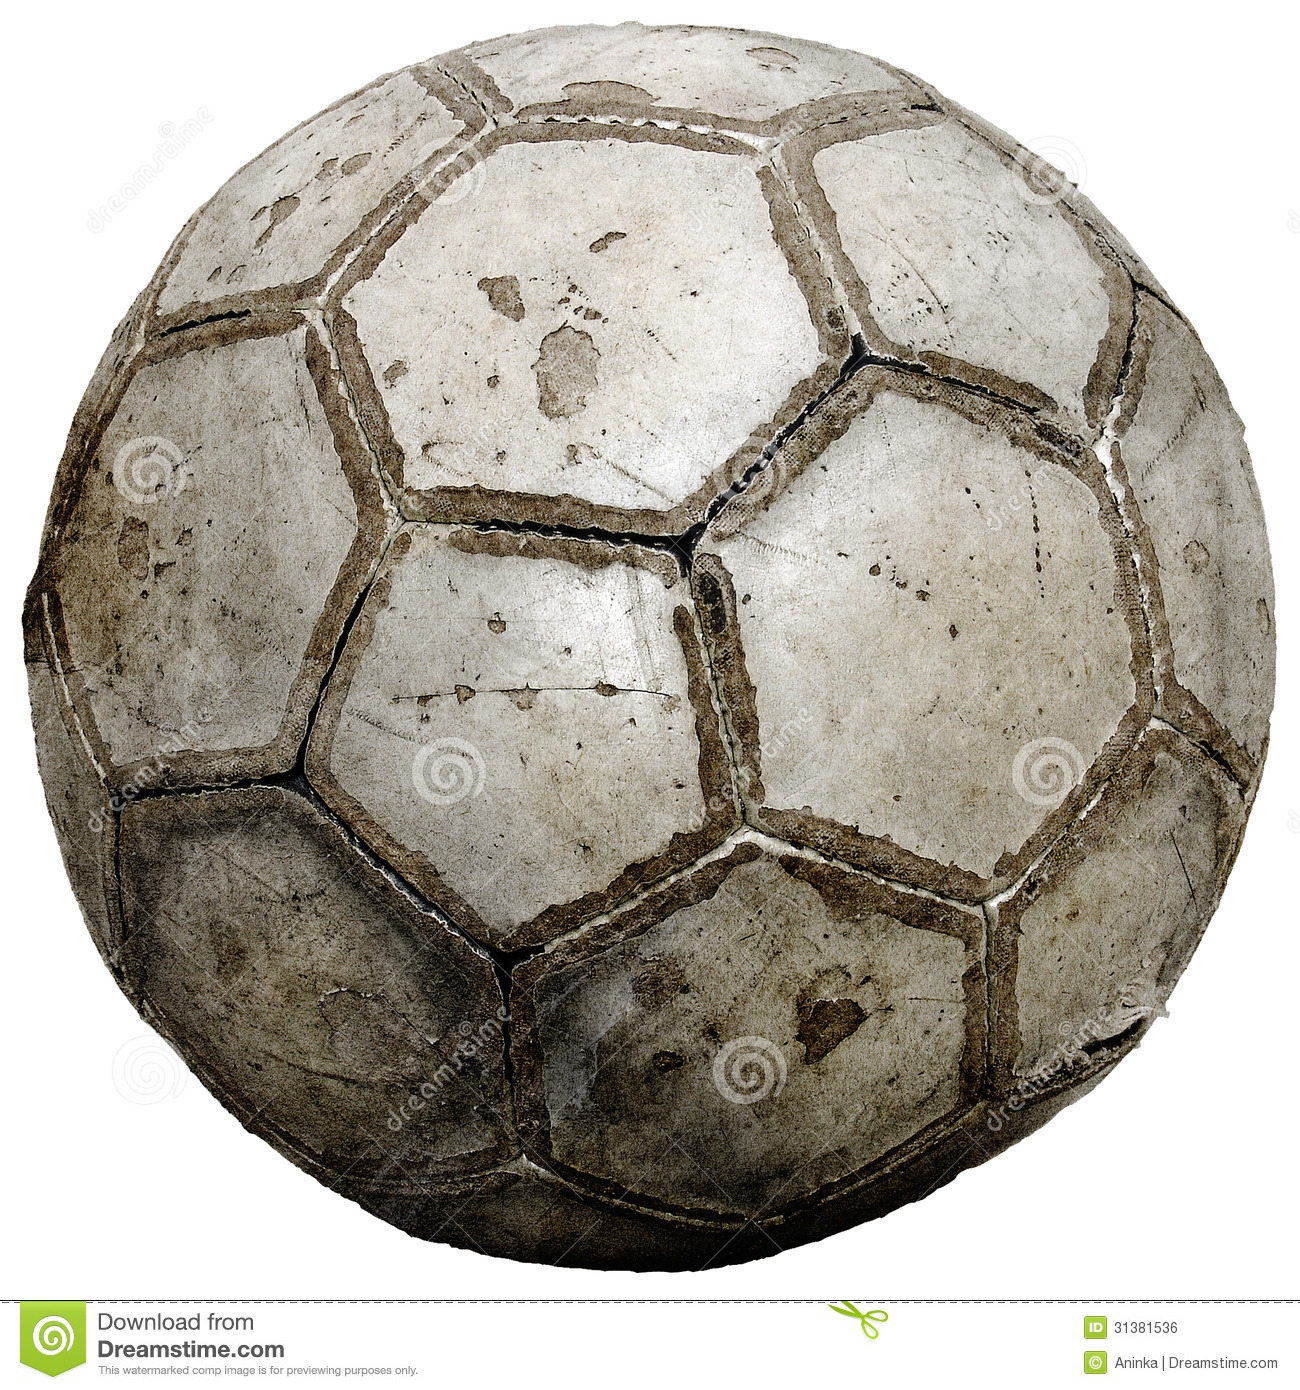 Vintage Soccer Ball Royalty Free Stock Image Image 31381536